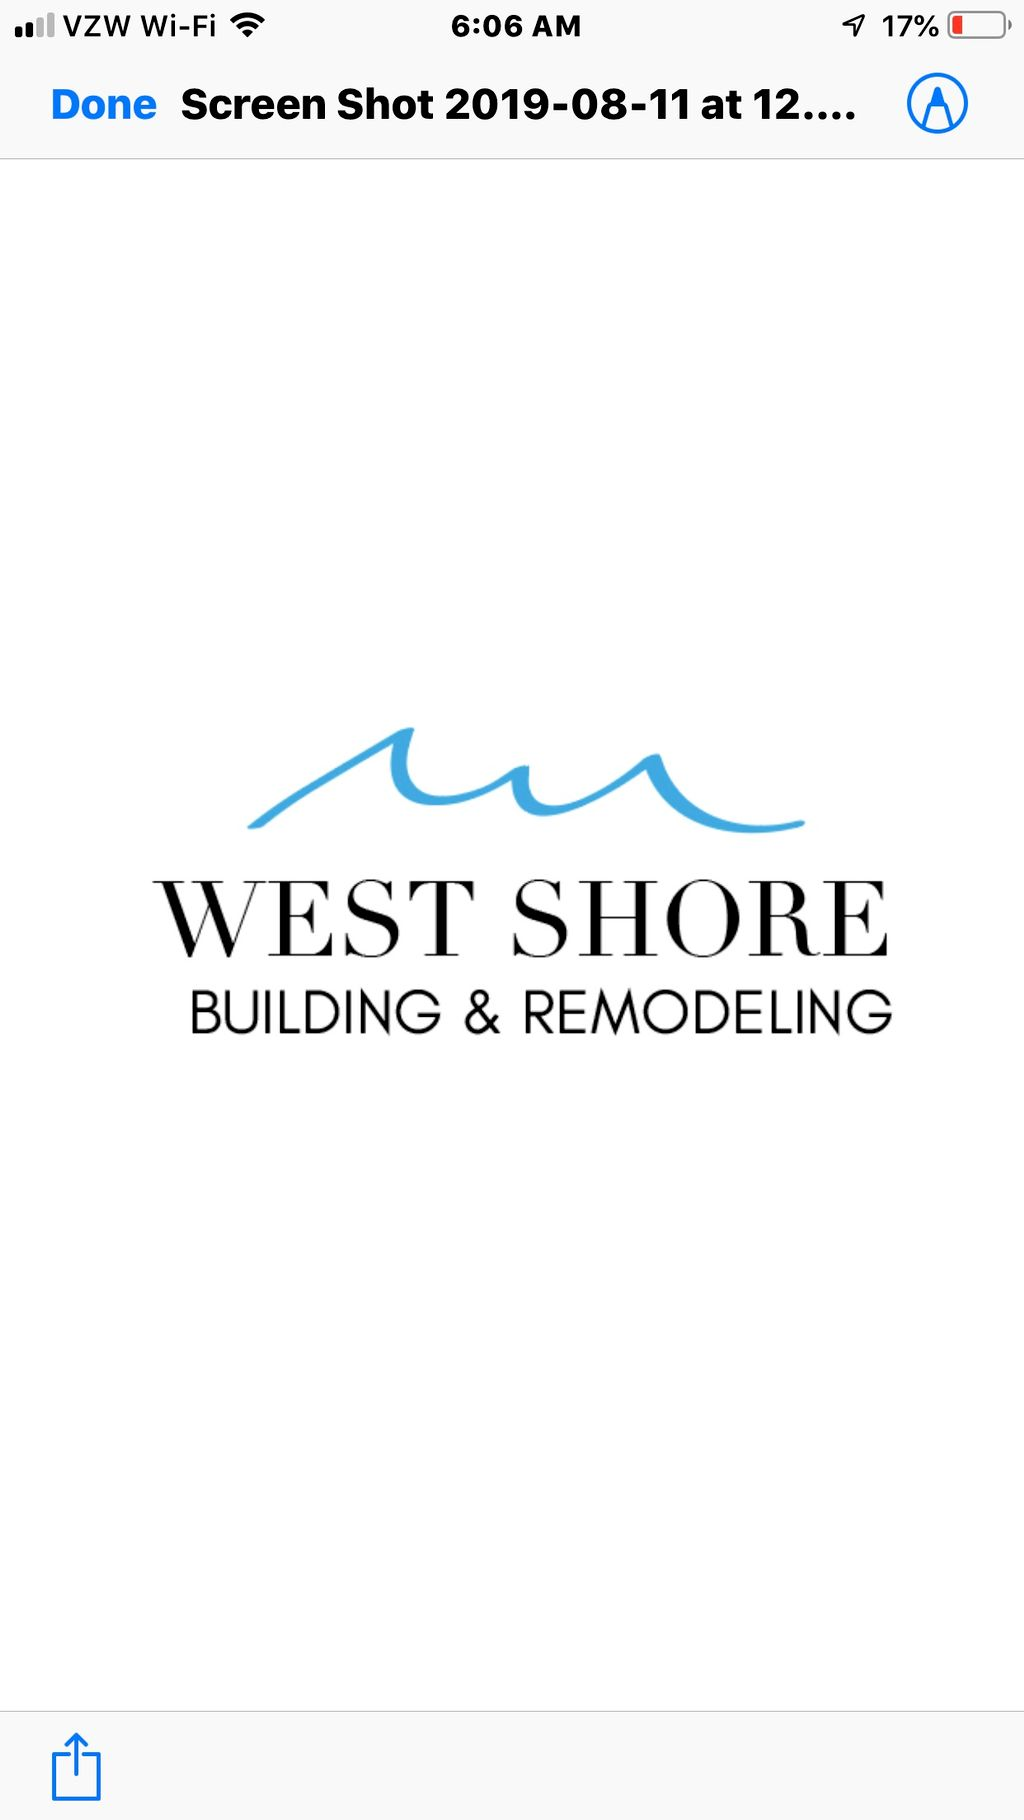 West Shore Building and Remodeling